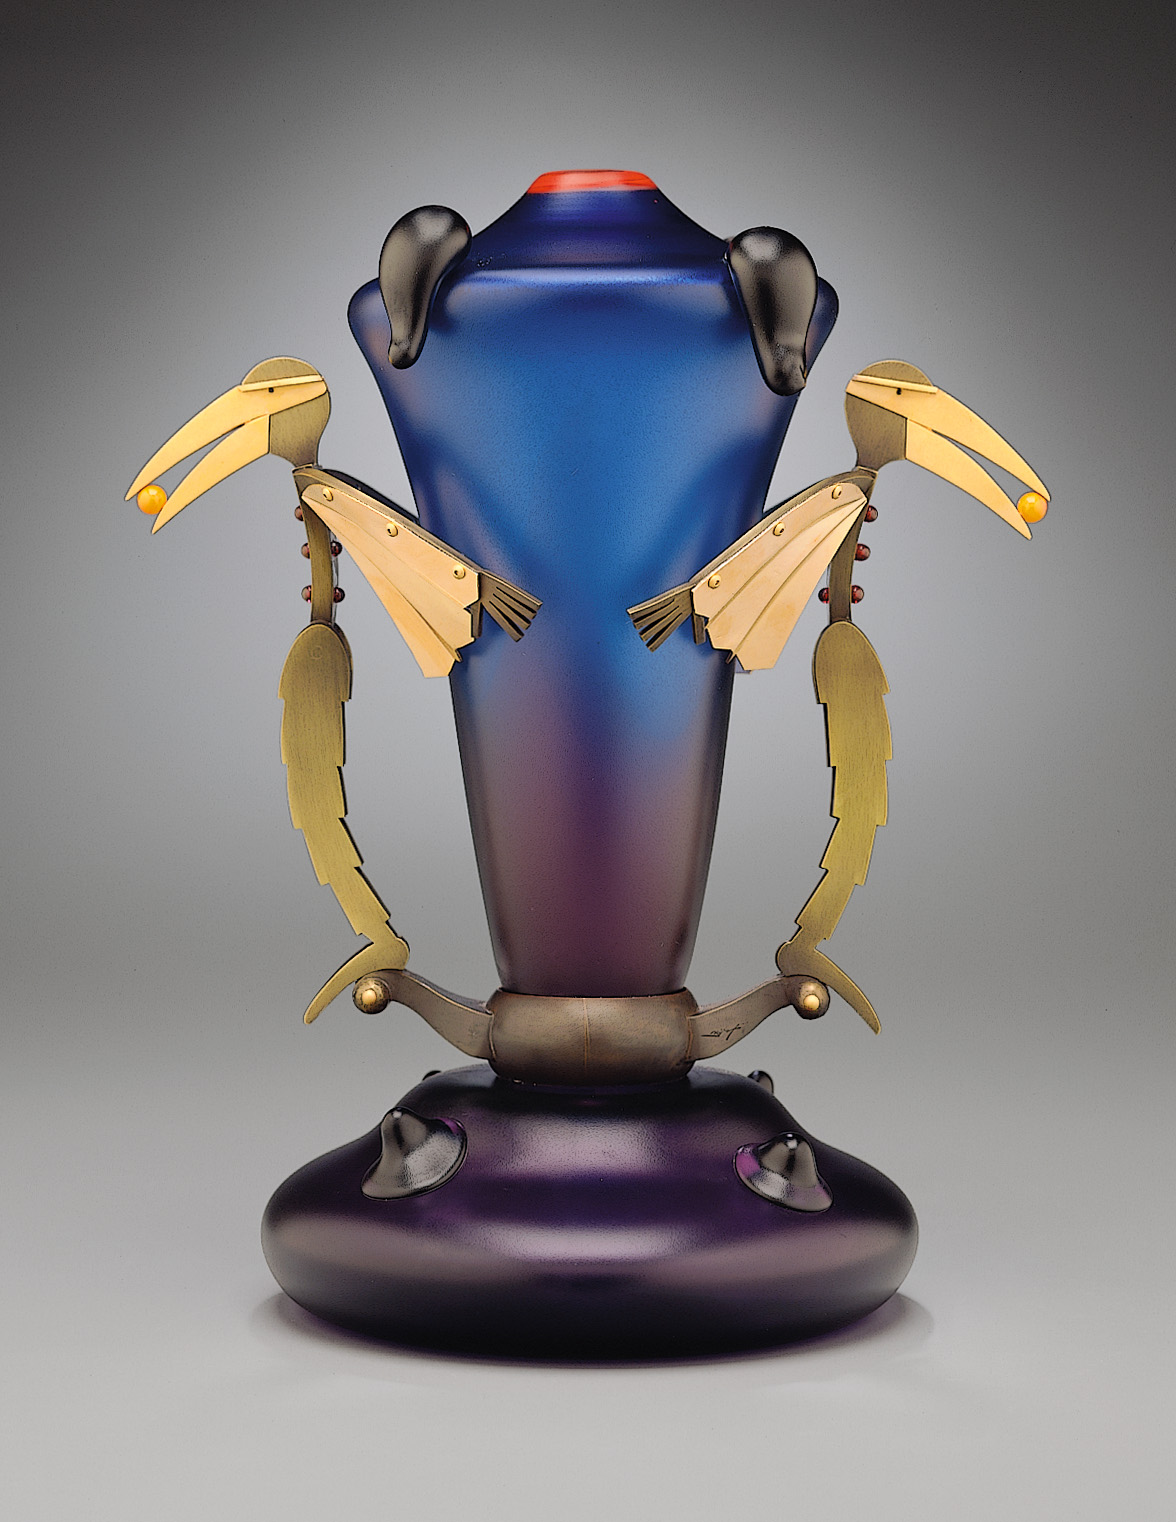 Bird Men   1998. Blown glass, bronze and gold-plated bronze. 12 x 10 x 7""